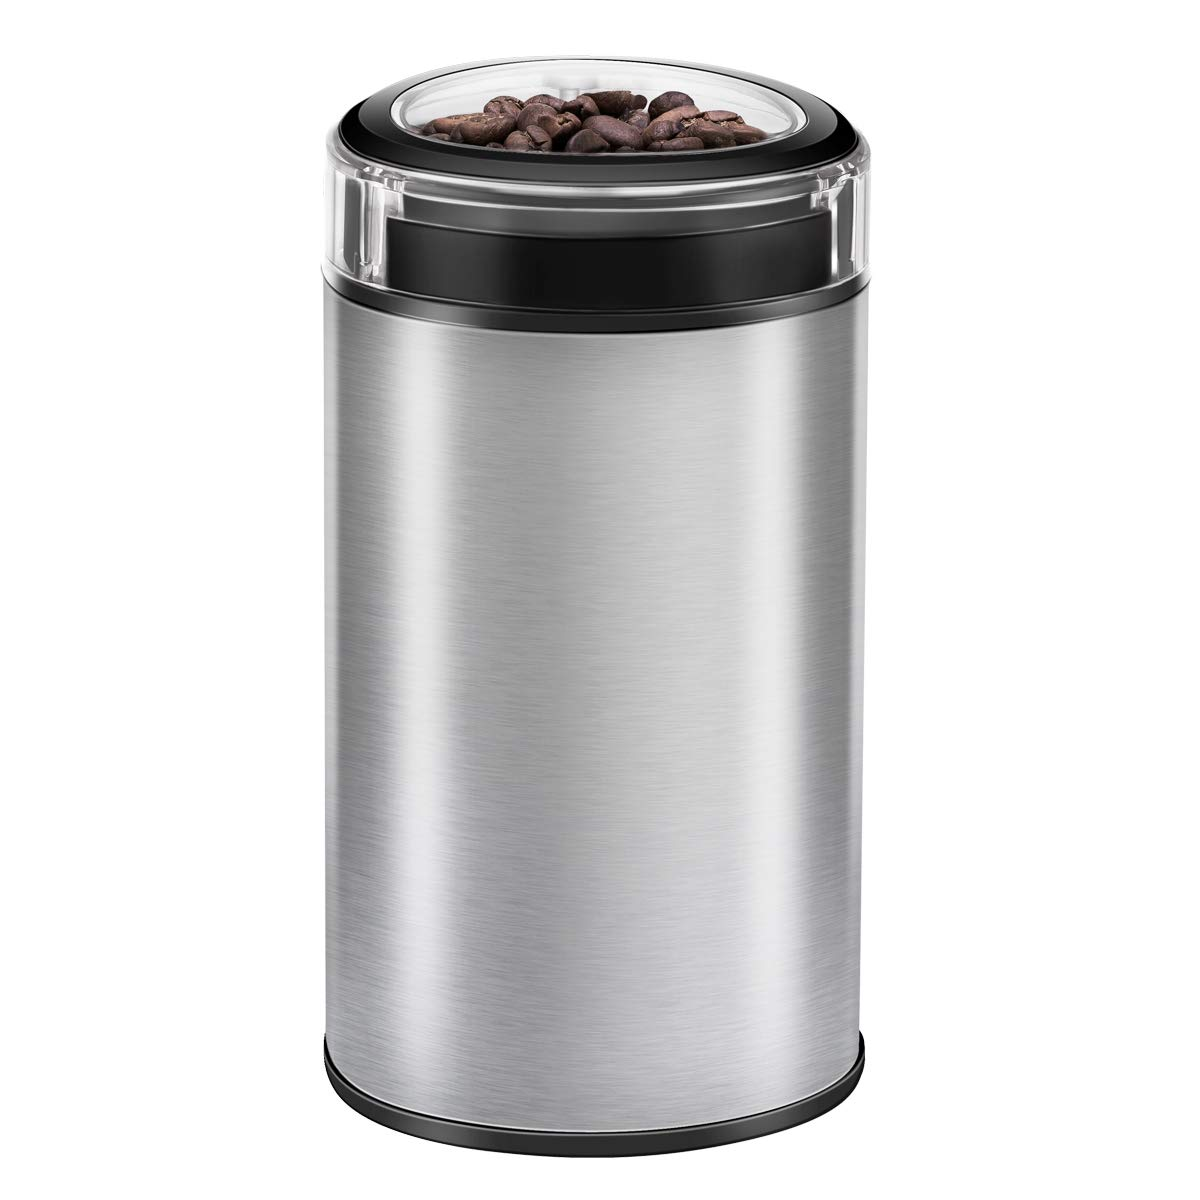 Electric coffee grinder, CUSIBOX Coffee Mill Grinders Fast Fine Home Bean Grinder 12 Cup 150W for Coffee Beans, Nuts, Grains, Spices (White)